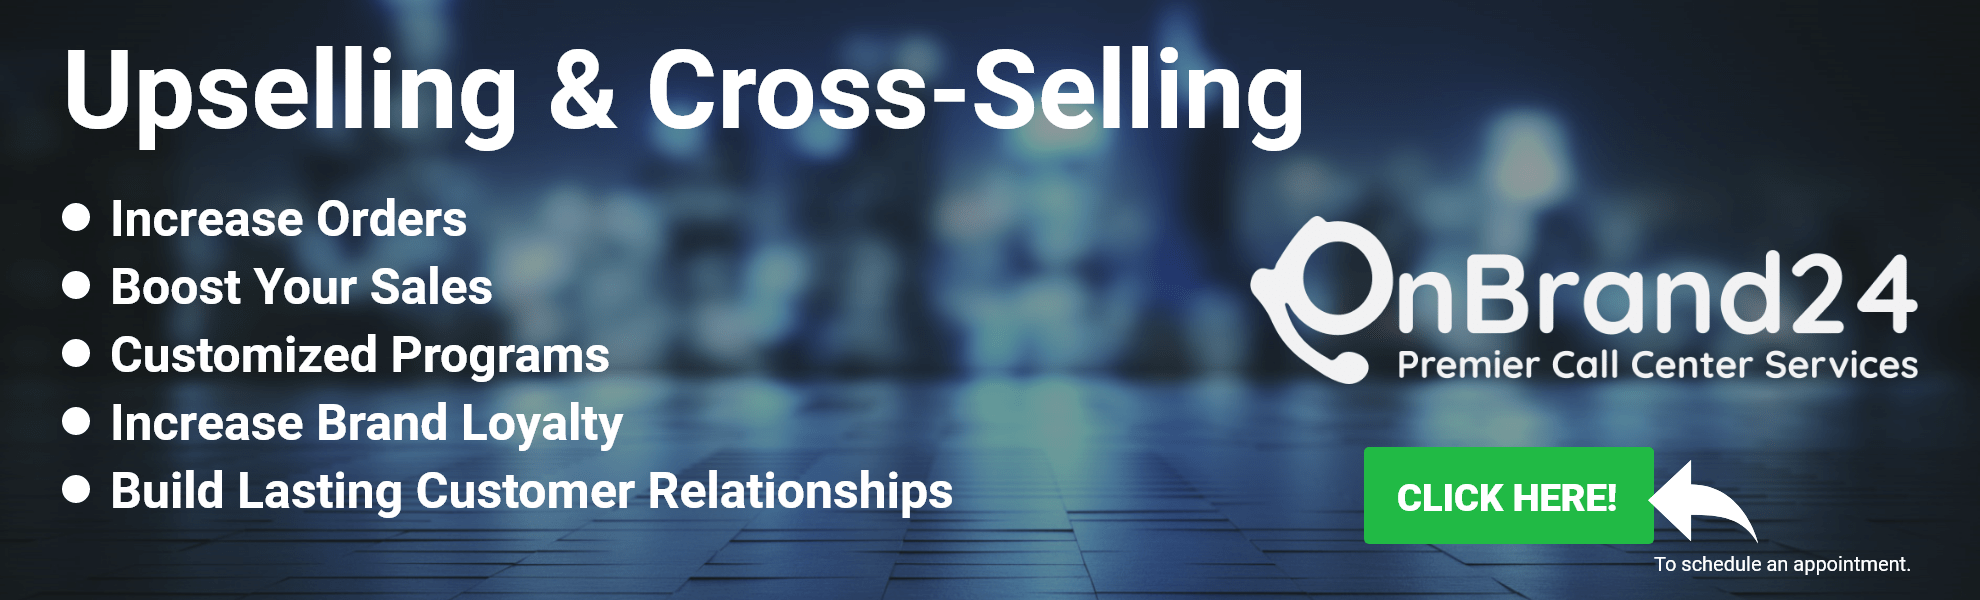 OnBrand24 Inbound Customer Service Cross Selling and Upselling